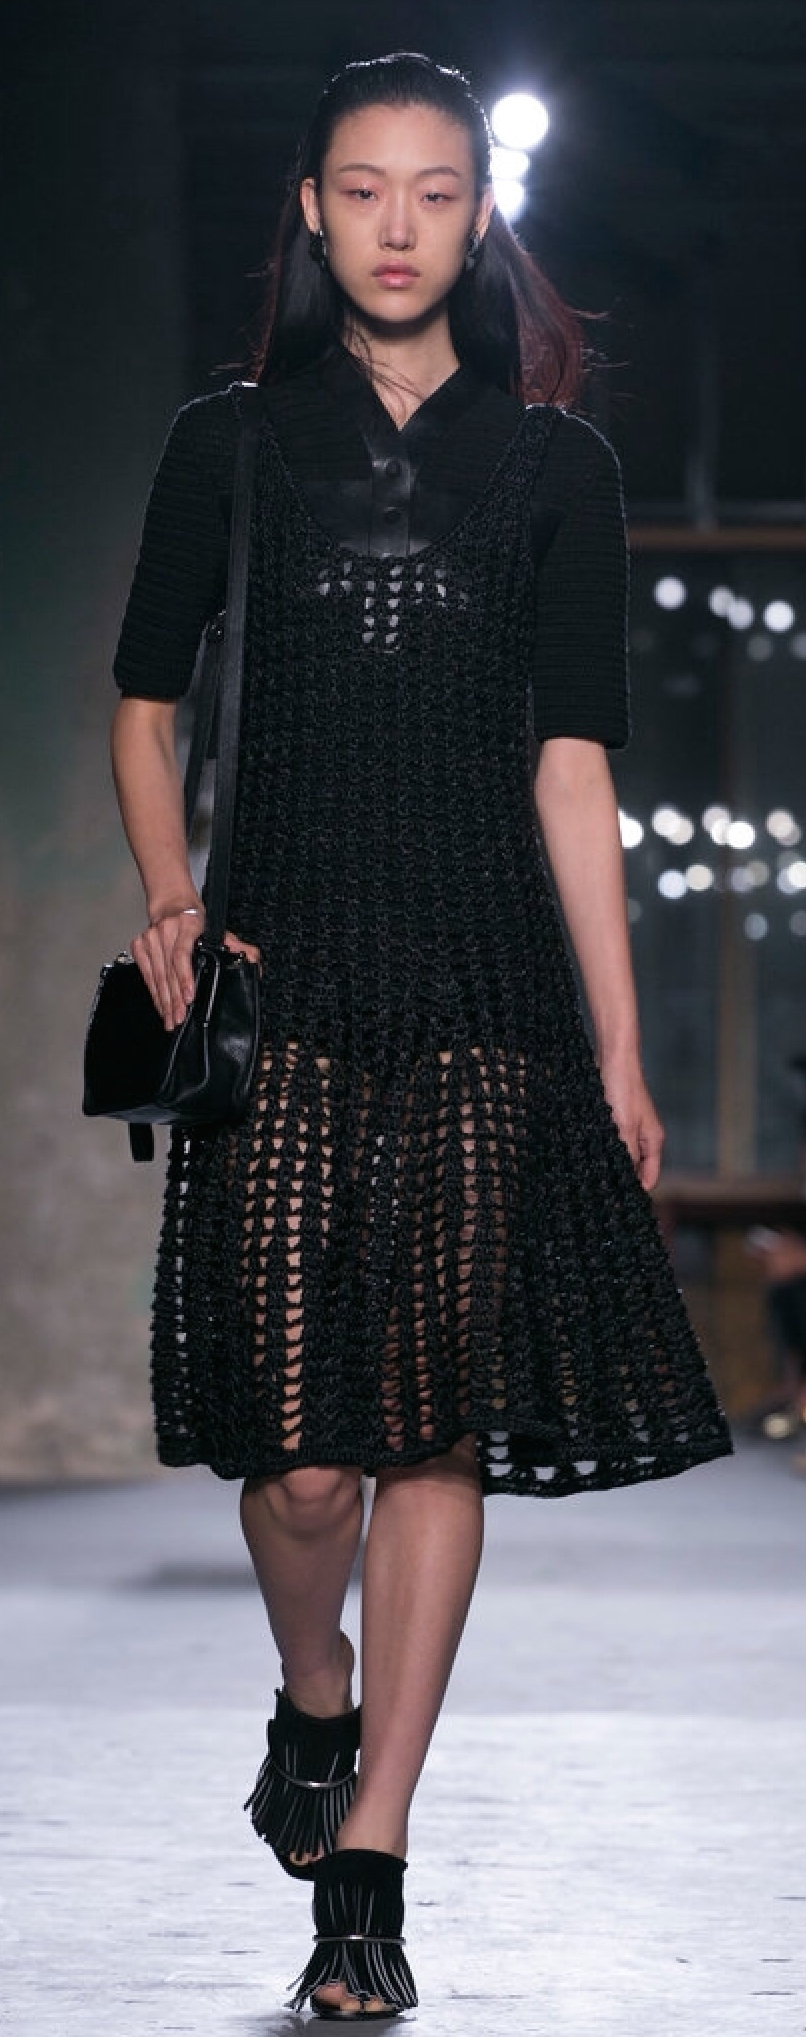 Proenza Schouler uses a heavy, wide-eyelet knit over a leather short jumper to communicate transparency.